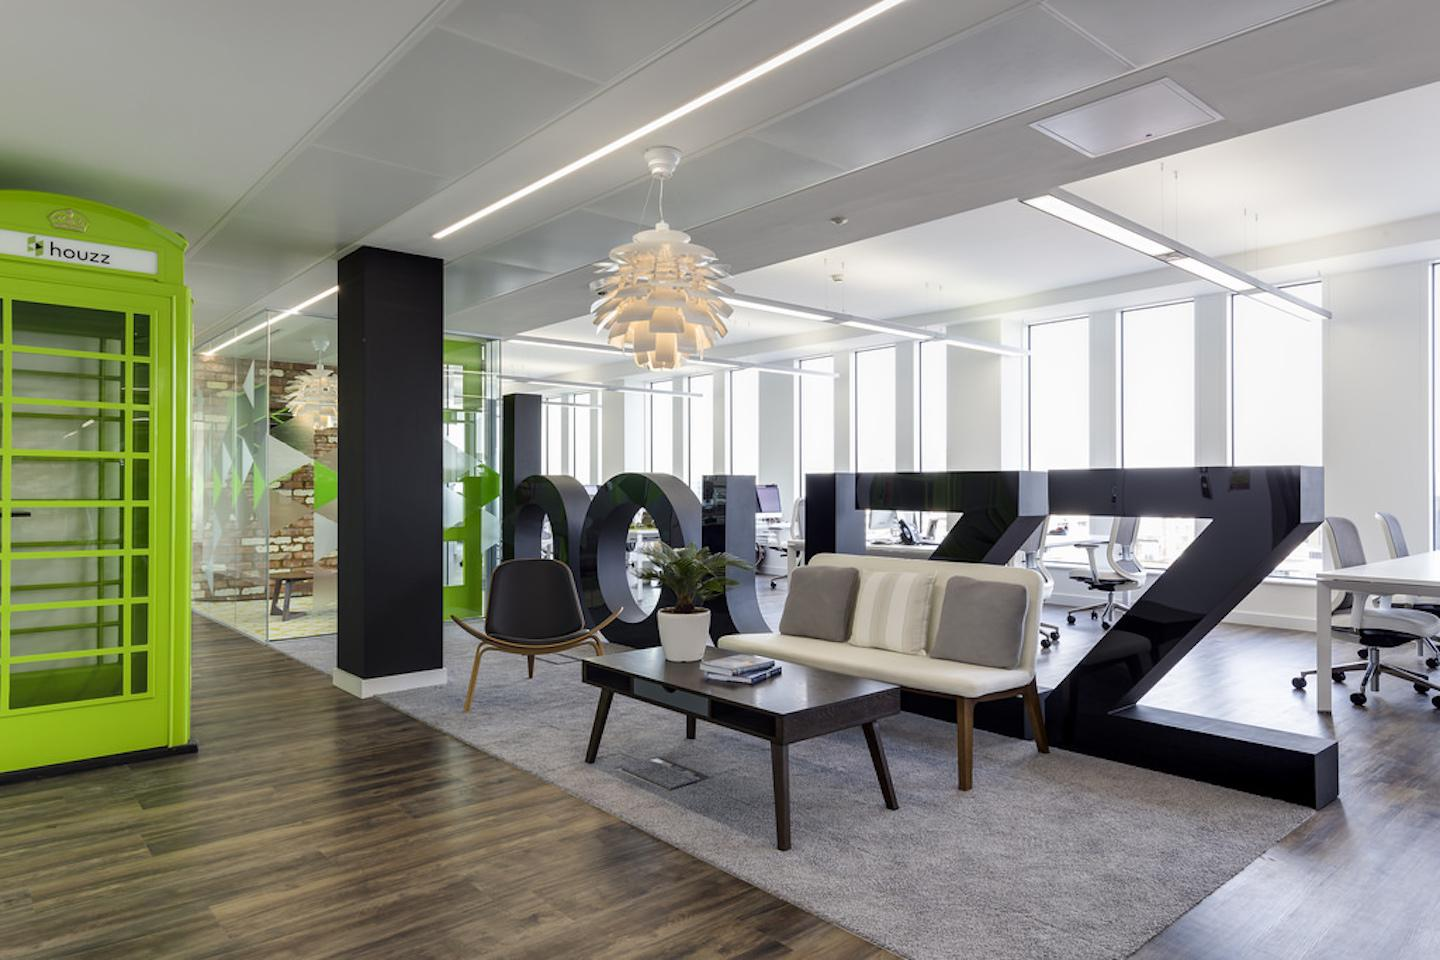 Houzz Jobs Careers Opportunities Meritocracy